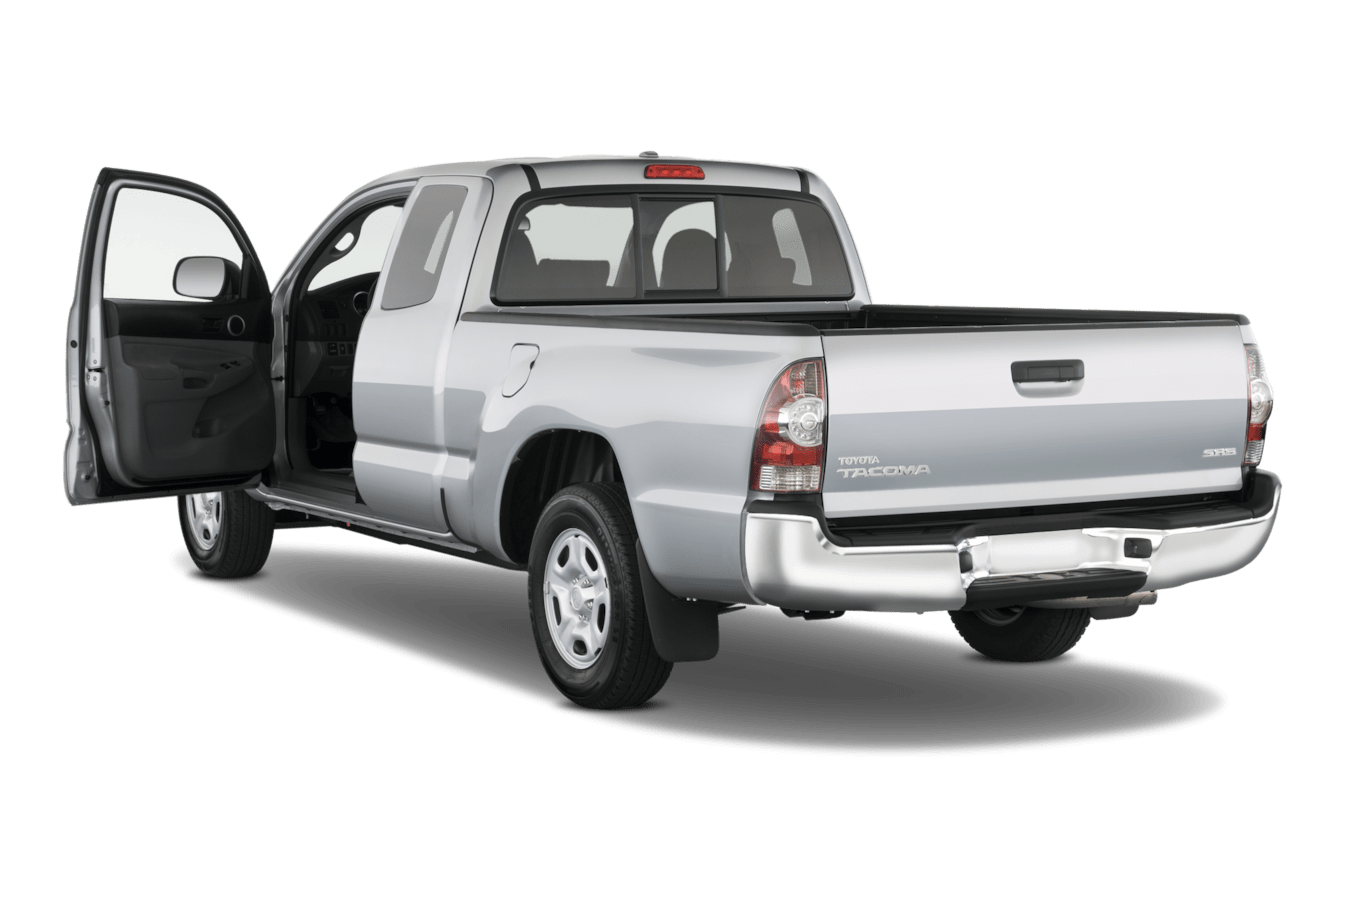 hight resolution of door locks wiring diagram 2010 tacoma access cab schematic diagrams 2002 toyota tacoma wiring diagram 2010